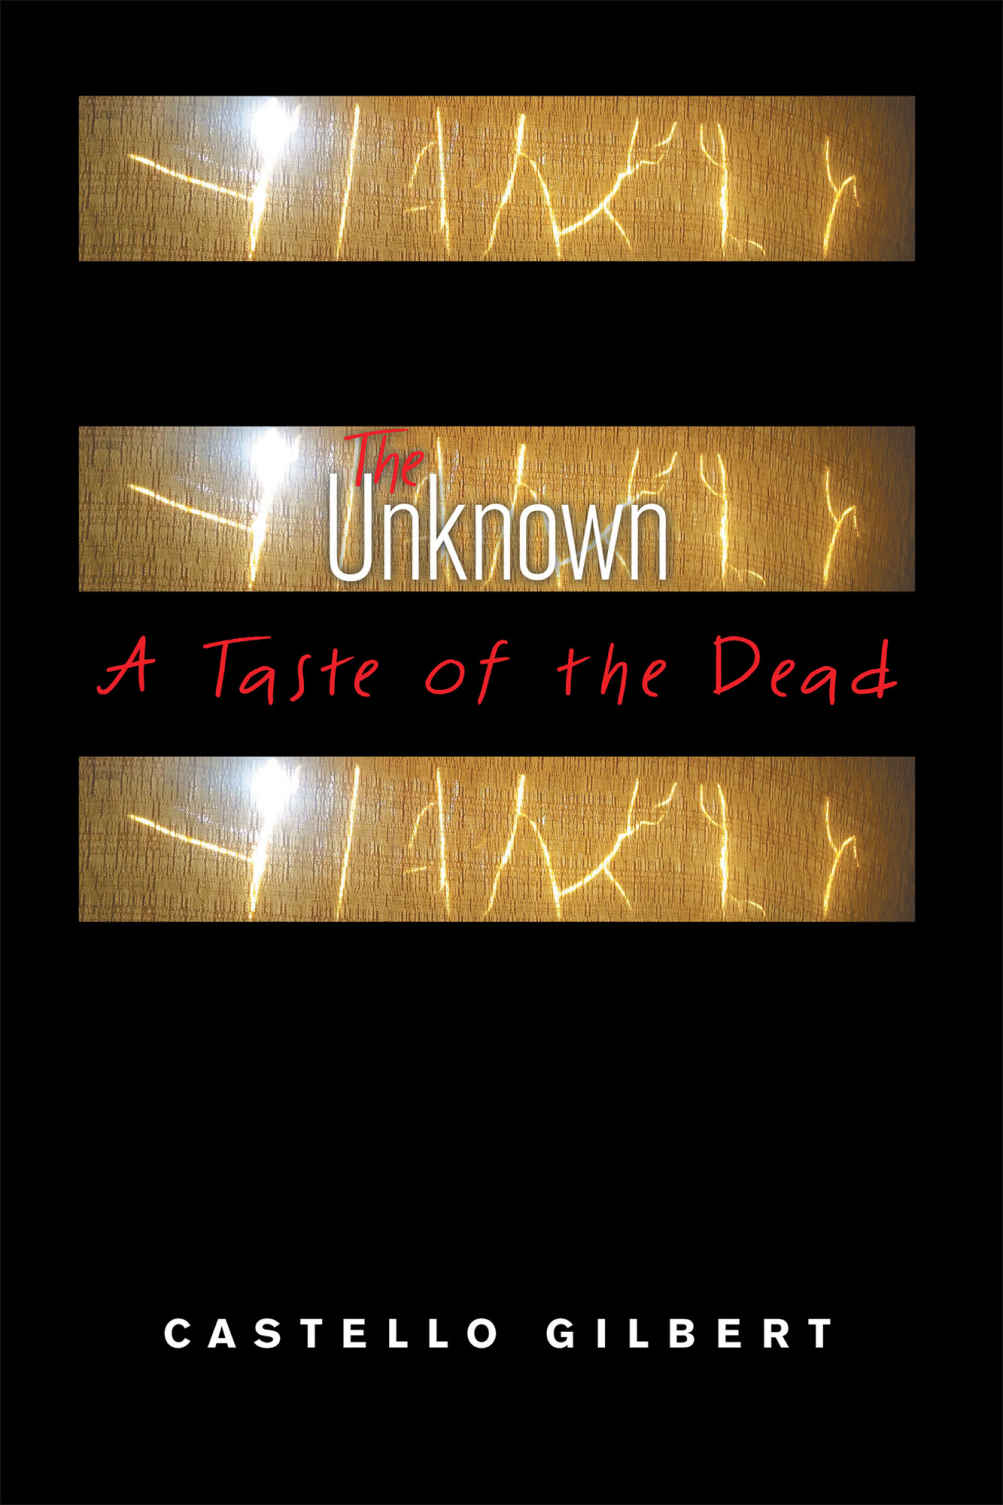 The Hollywood Book Reviews featured Author Castello Gilbert's The Unknown: A Taste of the Dead